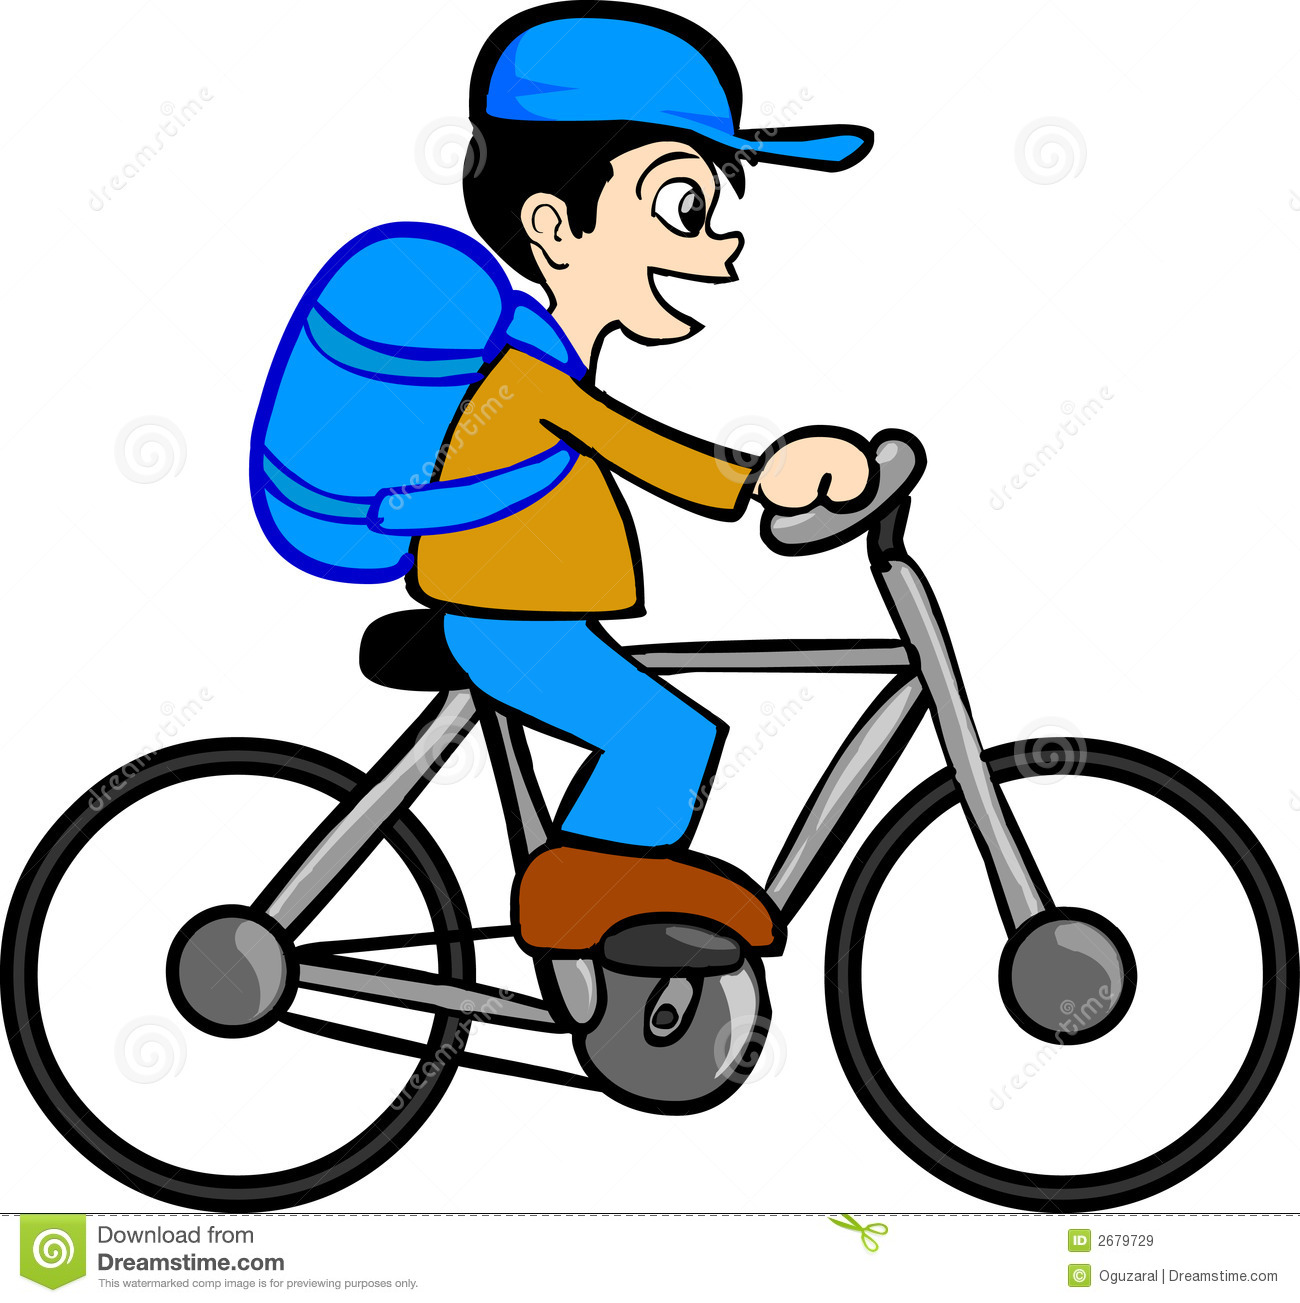 Guy riding bicycle and makes it to finish line clipart clip art black and white Biking Clipart | Free download best Biking Clipart on ClipArtMag.com clip art black and white